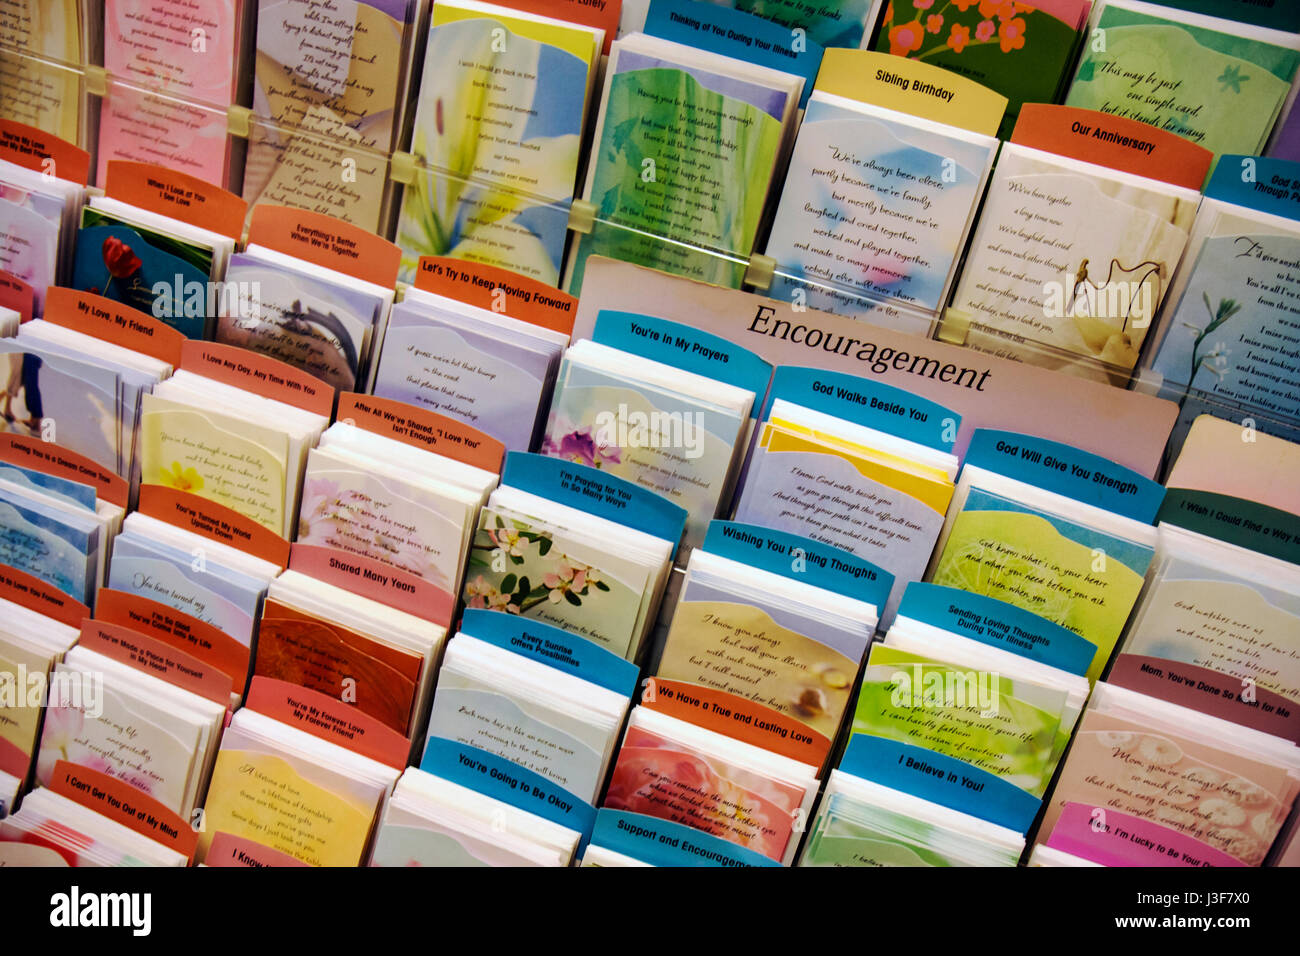 Miami Beach Florida greeting cards sentiments wishes encouragement ...